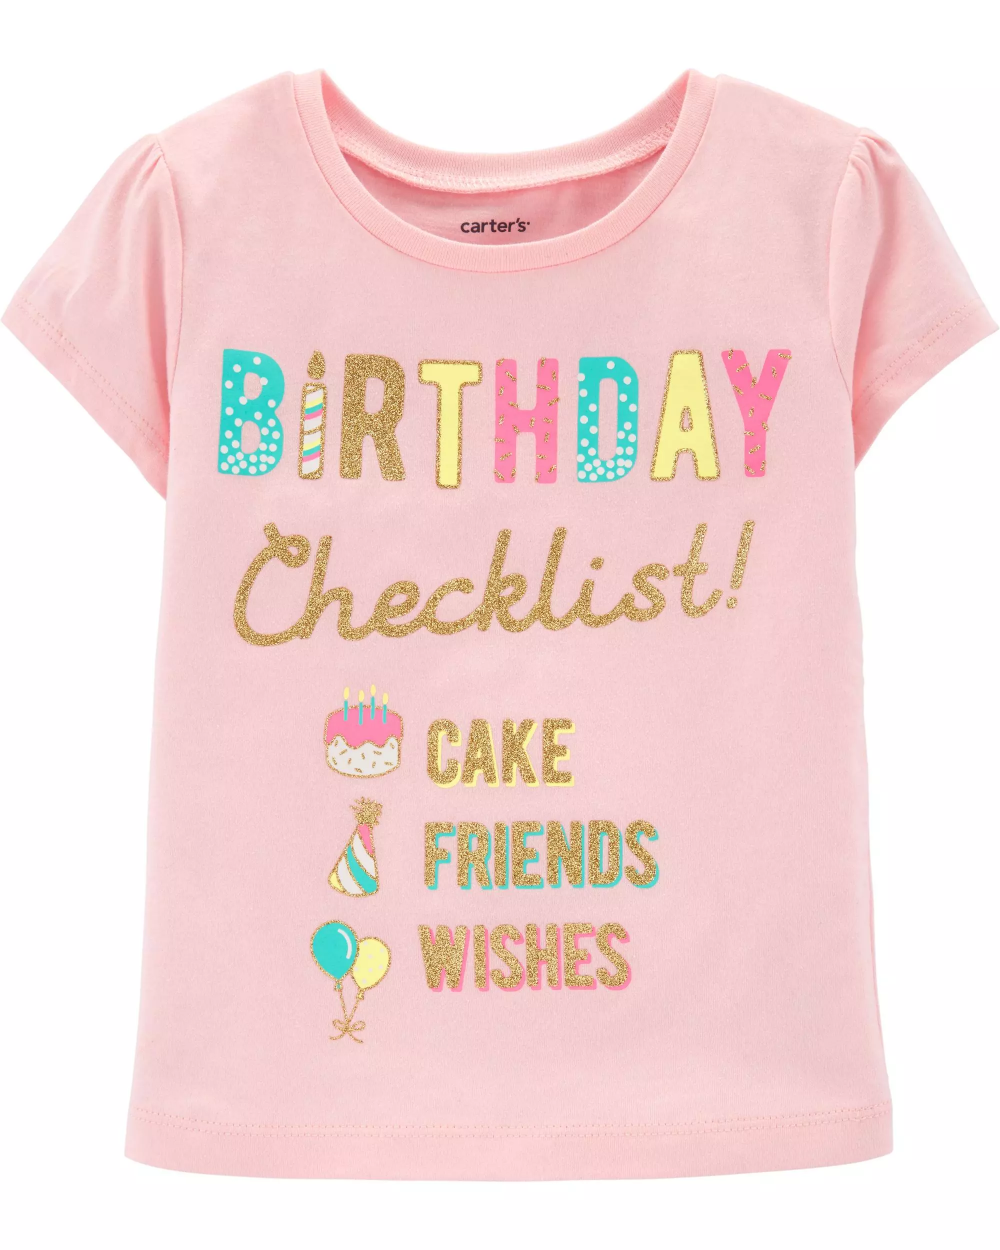 Amazon Baby Registry Glitter birthday, Baby girl tops